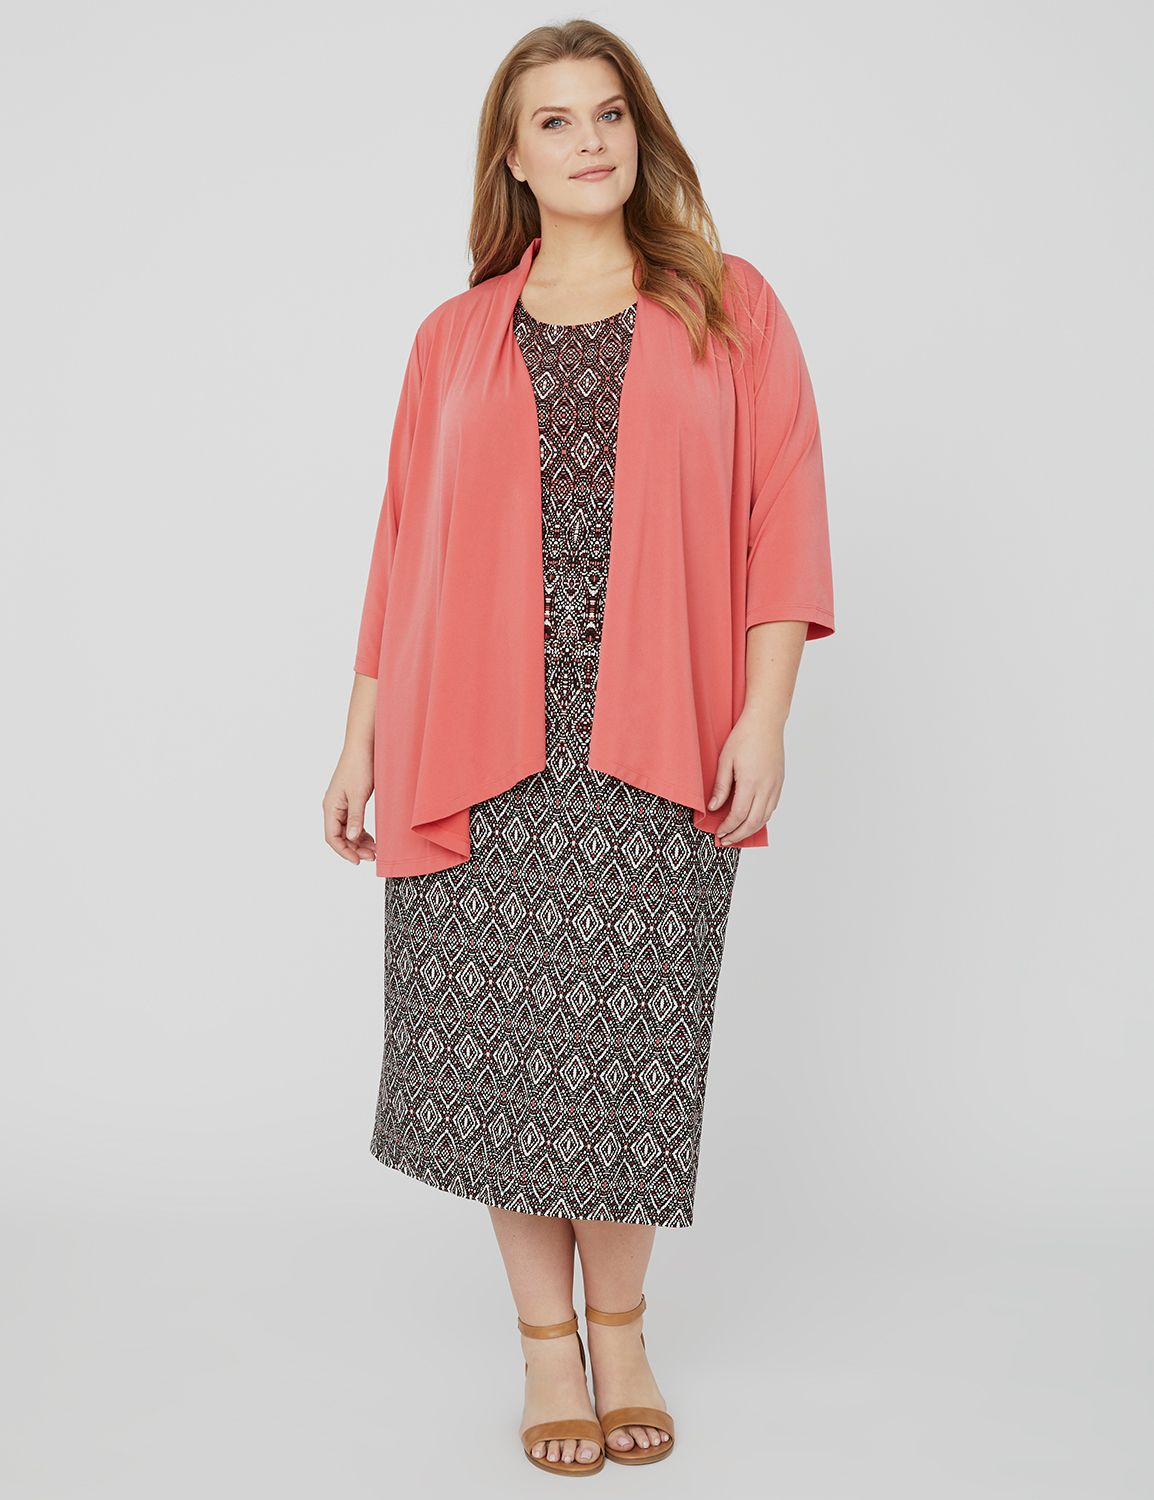 Modern Jacket Dress 1090057 ITY Solid Jacket with Print MP-300097008